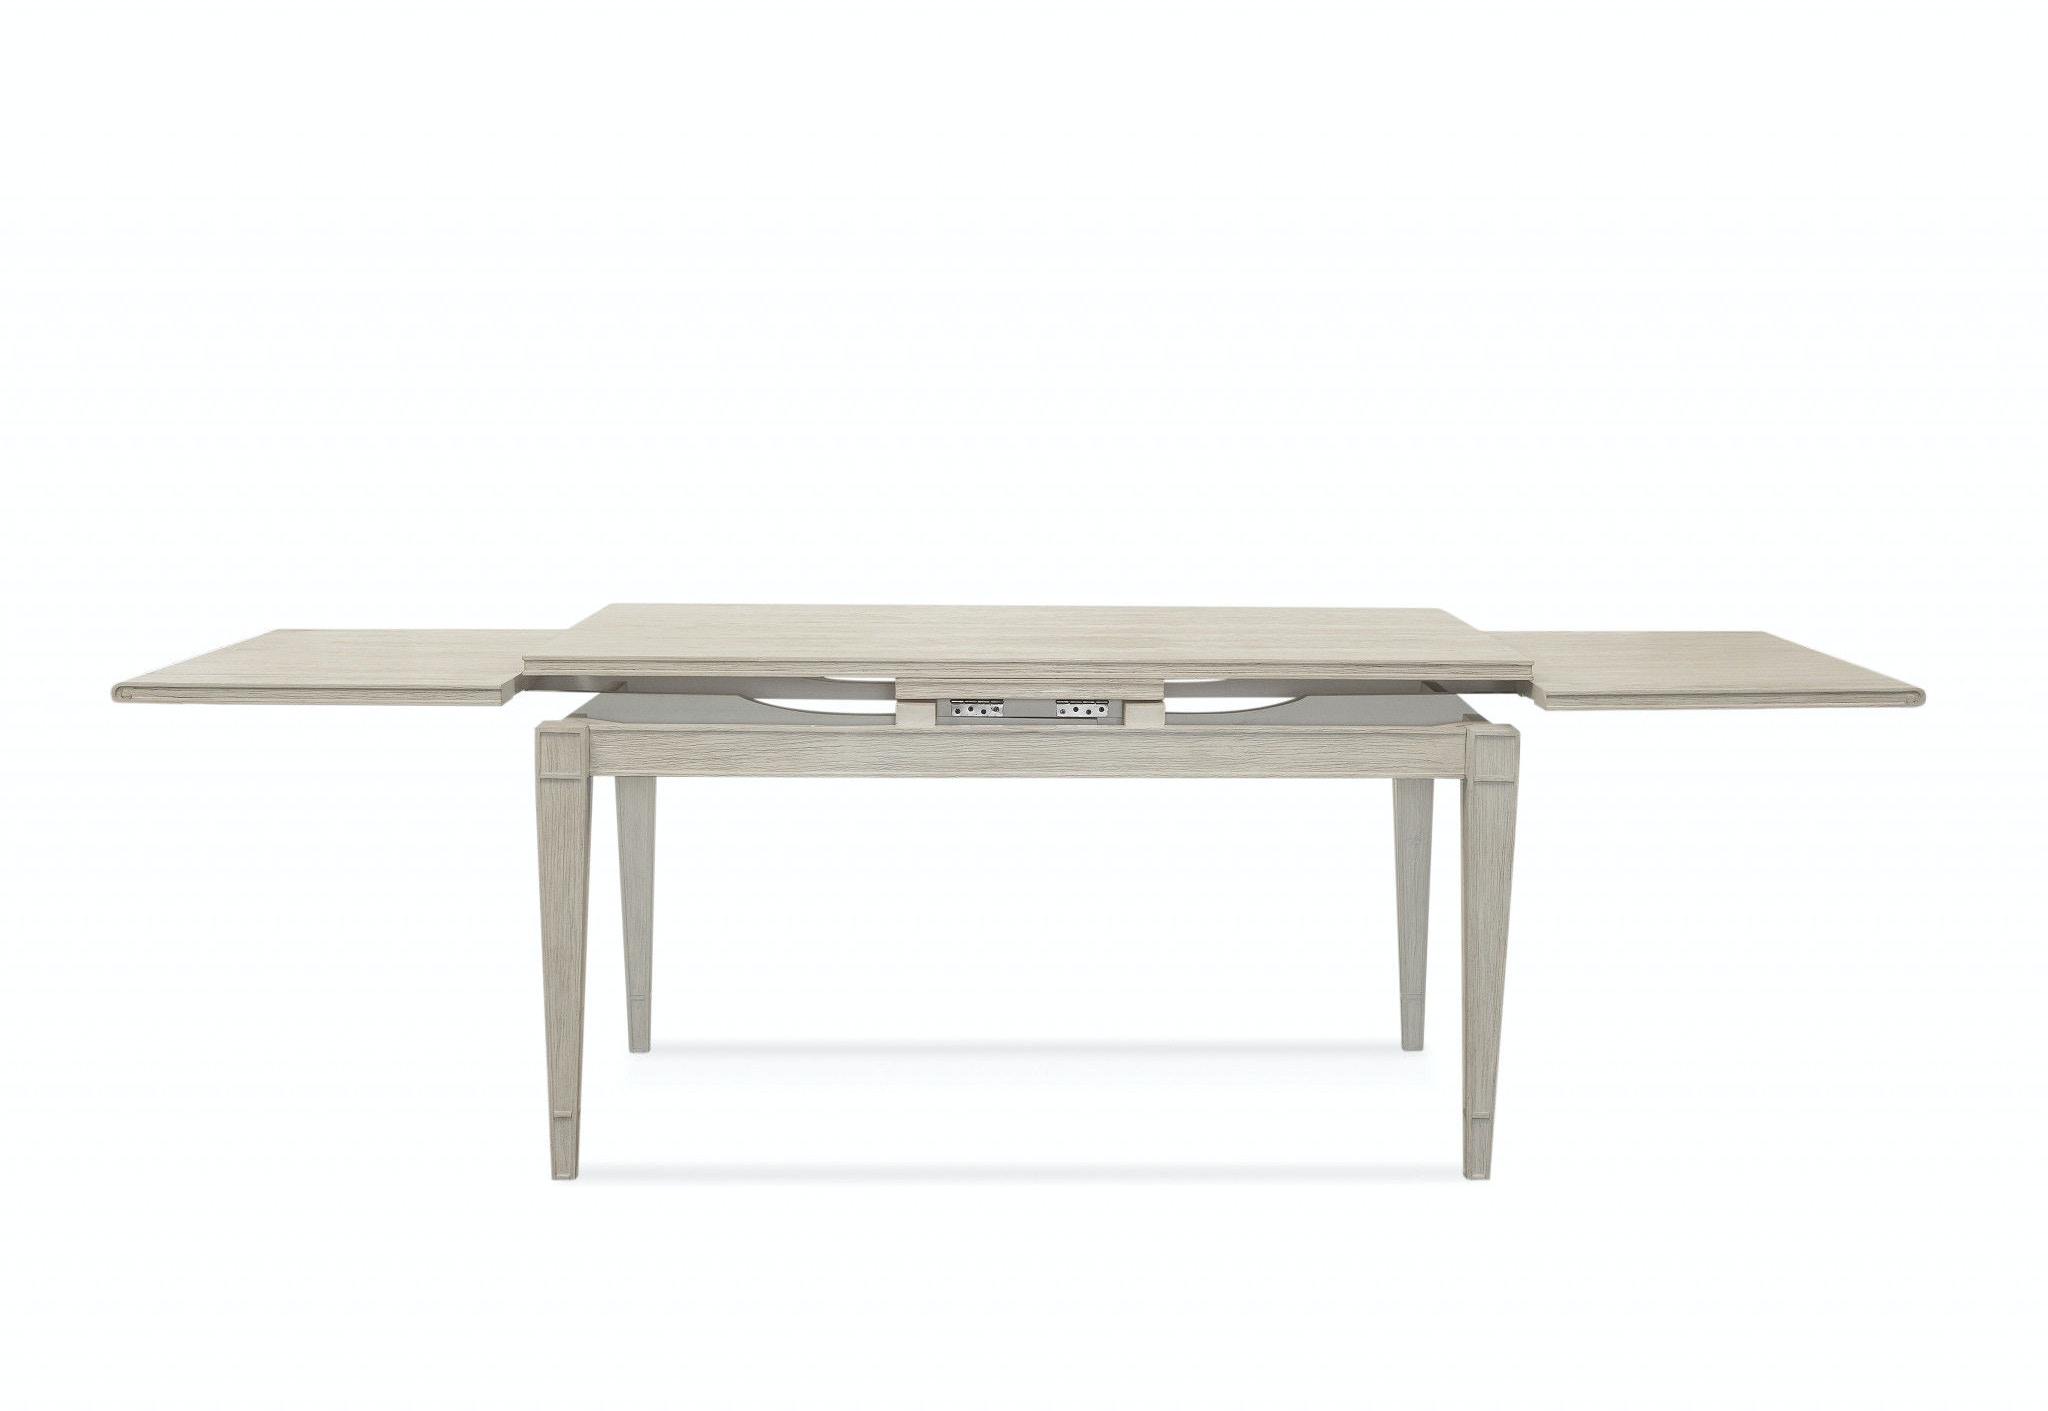 Bassett Mirror pany Dining Room Camryn Refectory Table